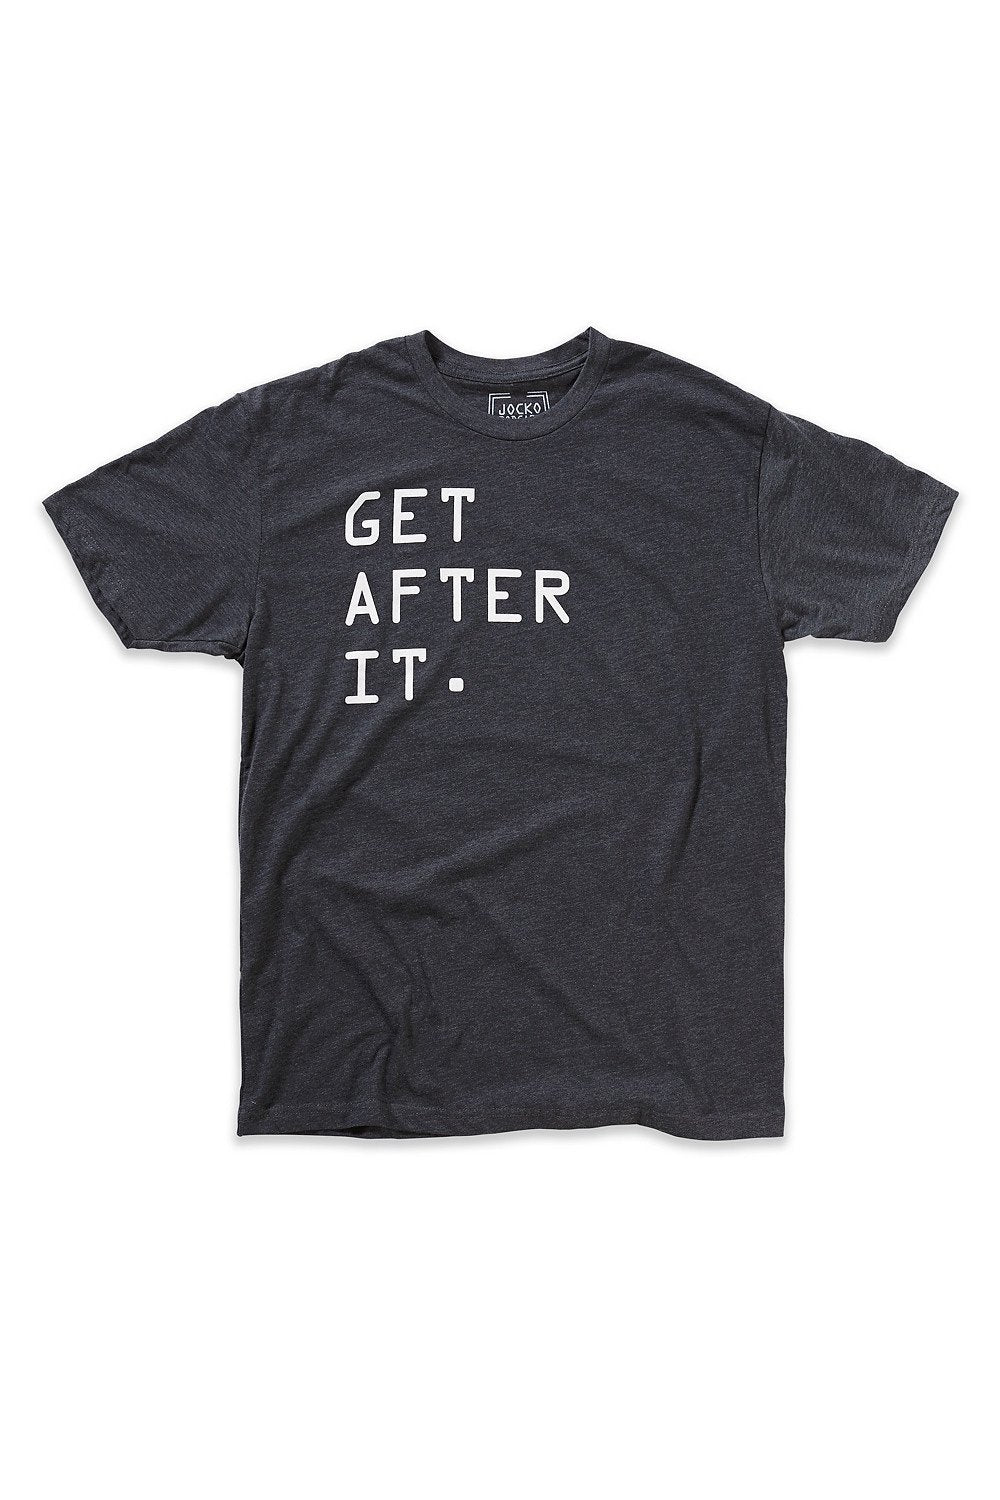 GET AFTER IT TEE SHIRT